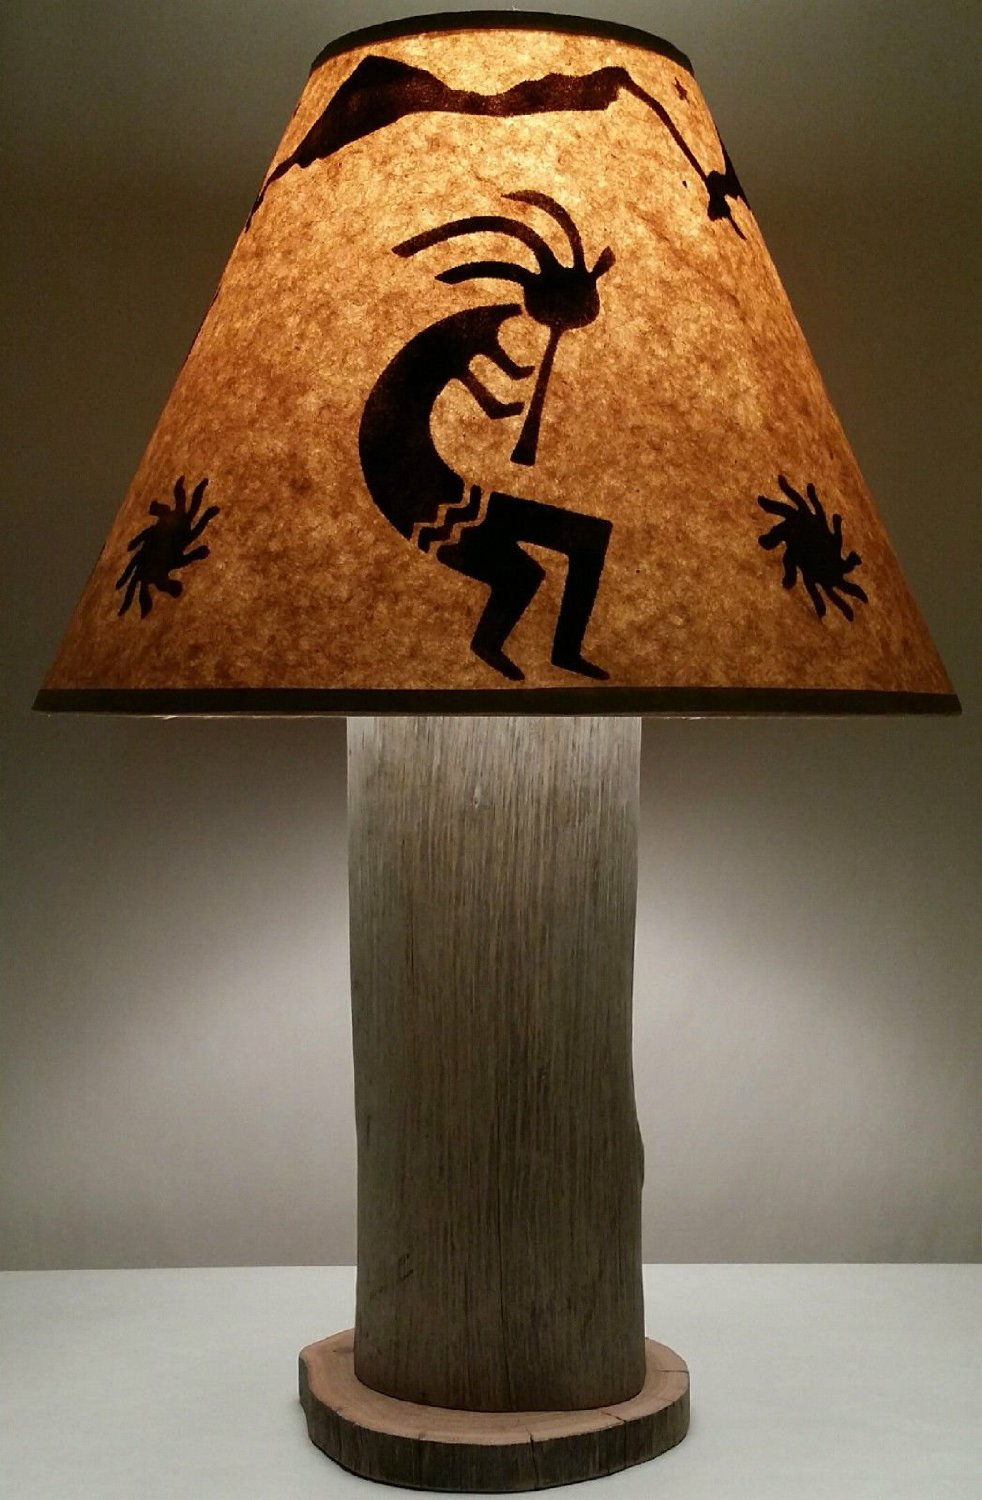 Southwestern native american lamps lighting from earth sky adding warmth is easy with lamp shades that glow bring natures gifts into your space aloadofball